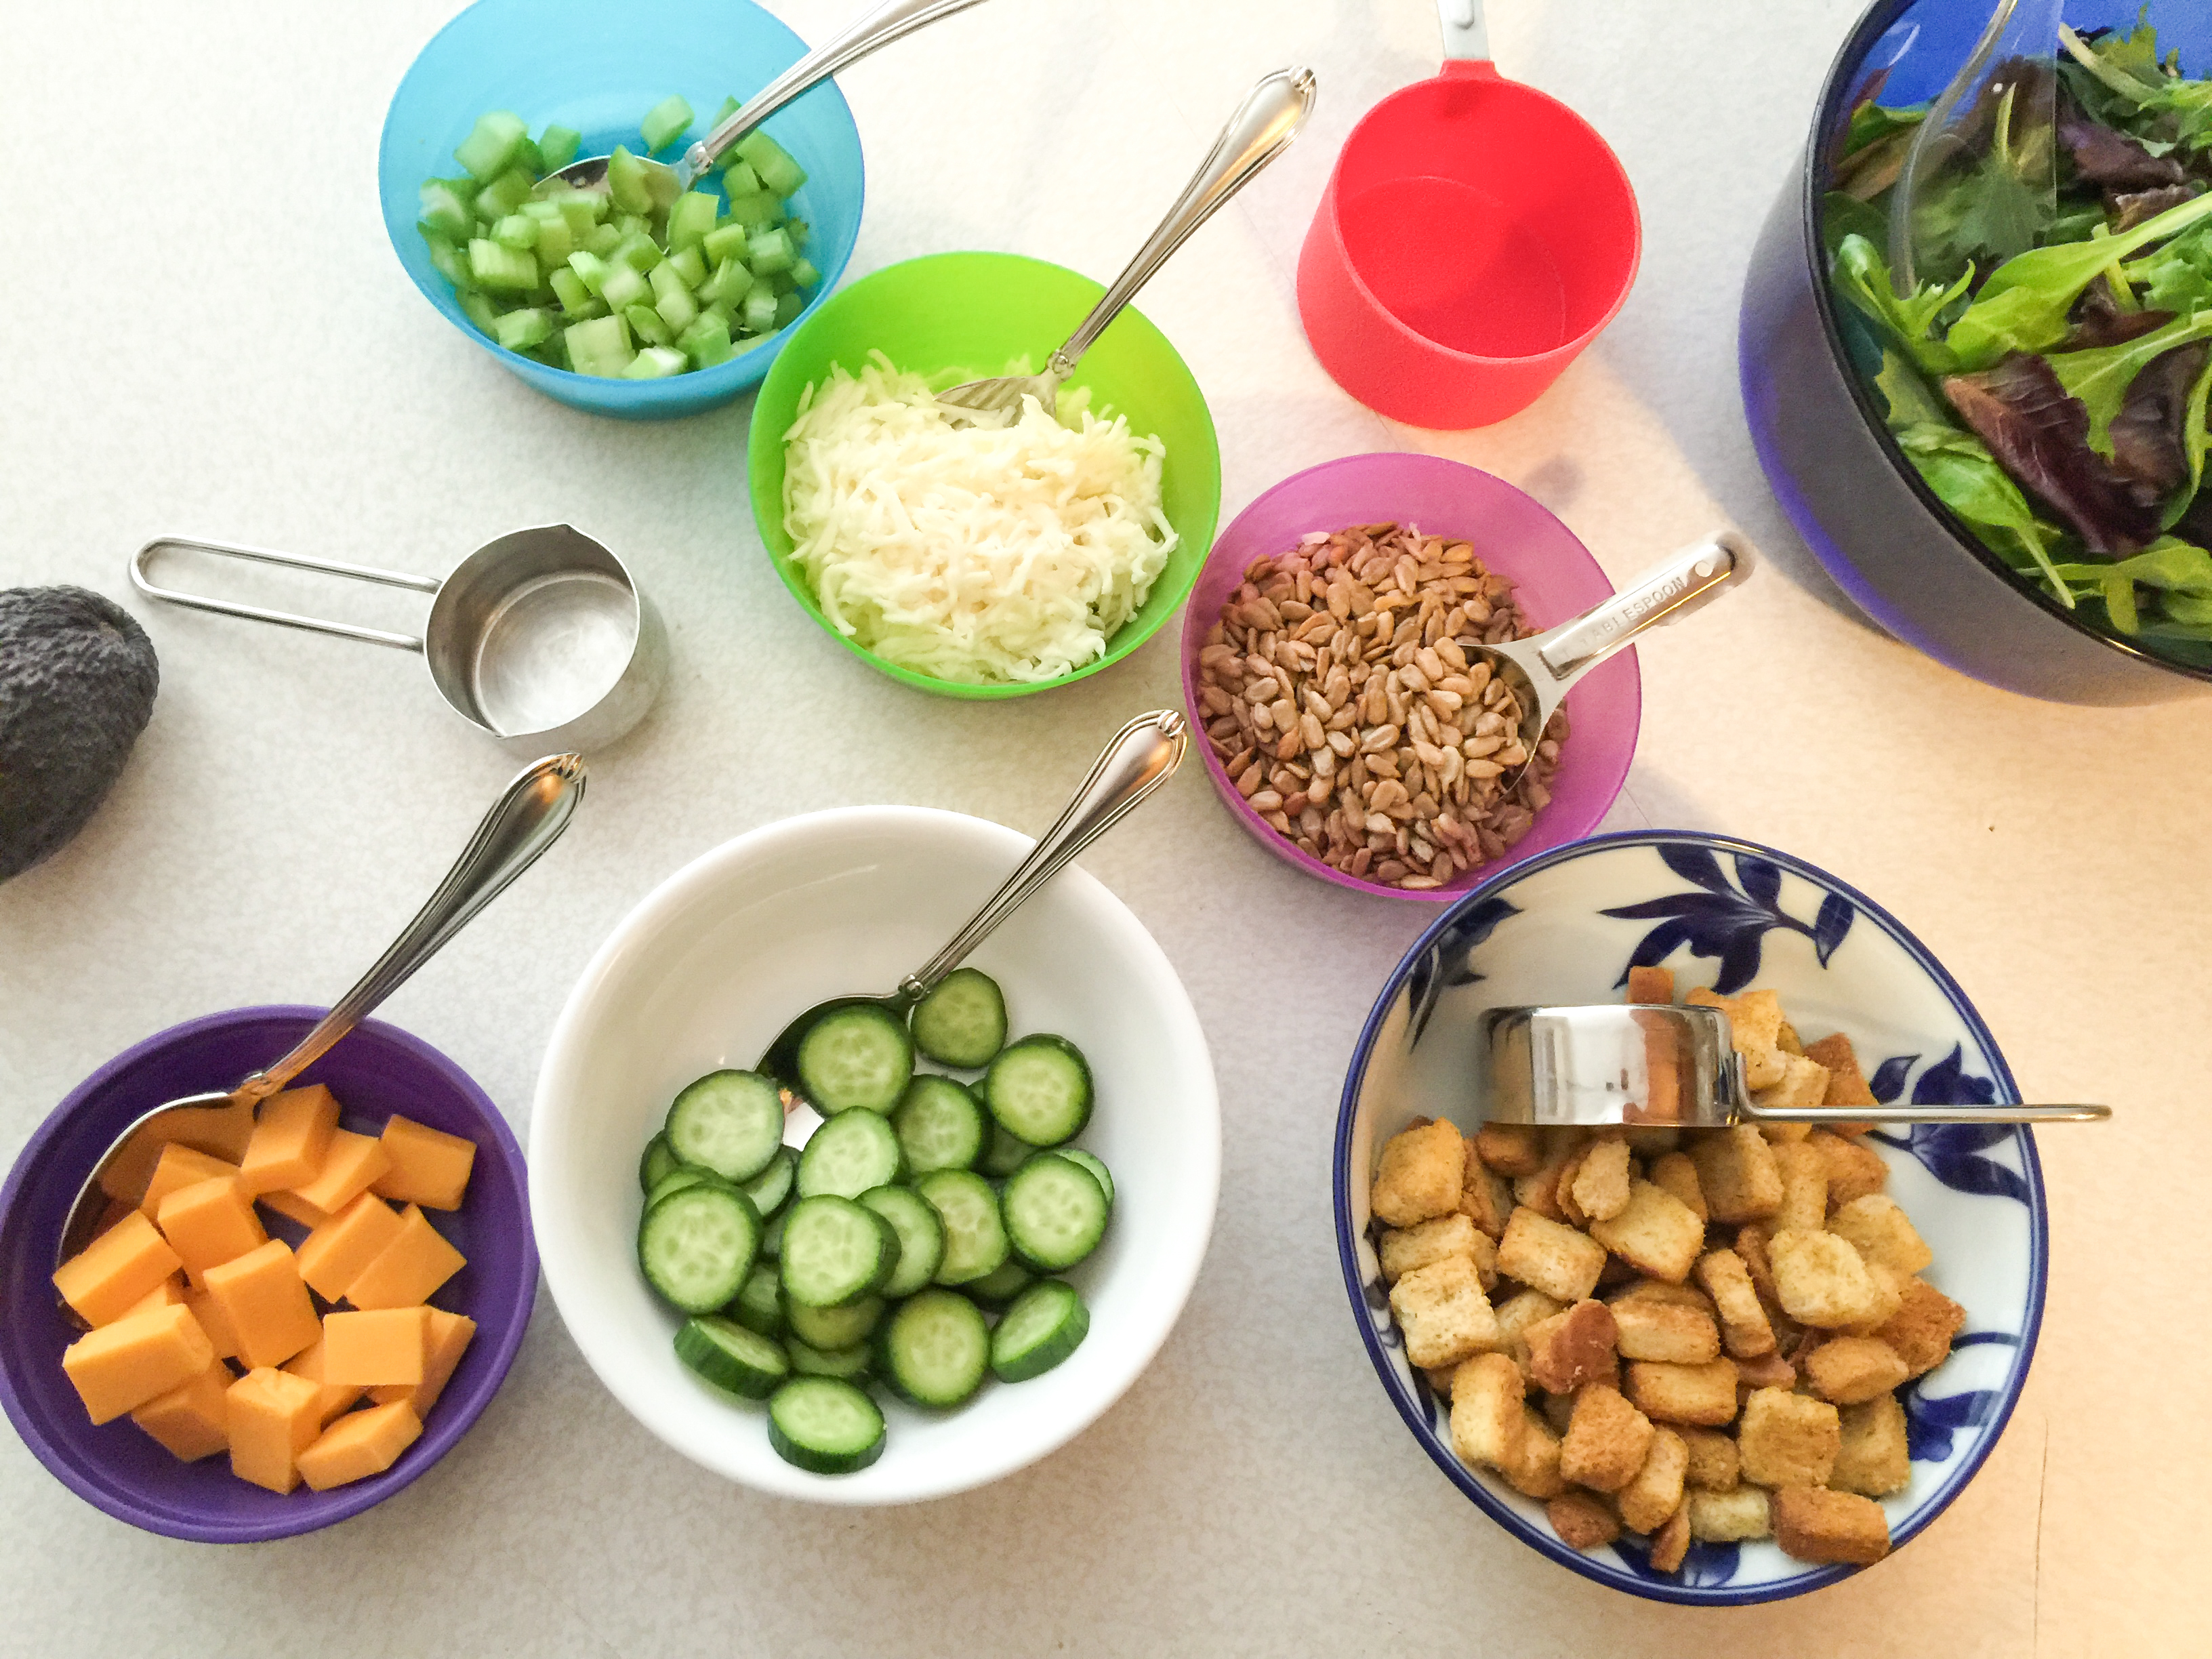 Our Awesome New Mealtime Trick for Picky Eaters With Type 1 Diabetes